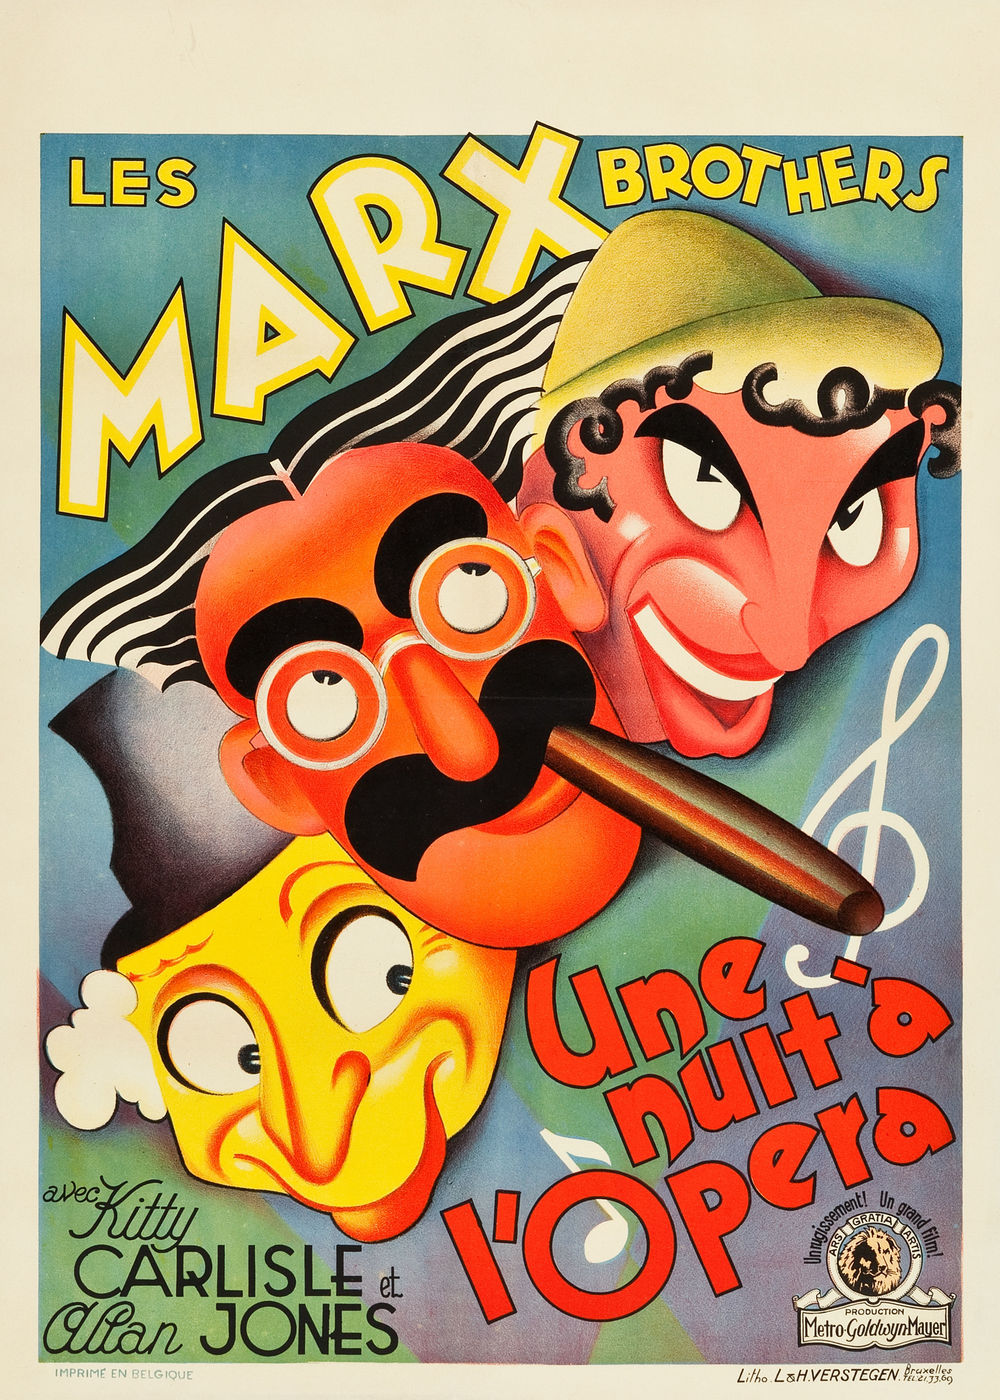 "A Night at the Opera (MGM, 1936). Pre-War Belgian (24"" X 33.5""). ""The Marx Brothers take aim at high society yet again in this, their first film for MGM after leaving Paramount. This comedy gem finds Groucho as the outrageous Otis B. Driftwood, companion to society matron Margaret Dumont. With the help of Chico and Harpo, he helps to smooth the path for opera singers Kitty Carlisle and Allan Jones to find love. The film showcases a slew of big musical productions, including ""Cosi, Cosa"" aboard the steamship. A rare find, this delightful poster features artwork in the style of Al Hirschfeld, brilliantly capturing the outrageous and zany nature of the film with its playful caricatures of the comedy trio. Prior to restoration, the poster had pinholes in the borders and lower background corners, two small tears in the right border, and a tear at the vertical fold in the imprint area. Touchup has been applied to the folds. Very Fine on Linen. Estimate: $2,000 - $4,000."" —H.A."